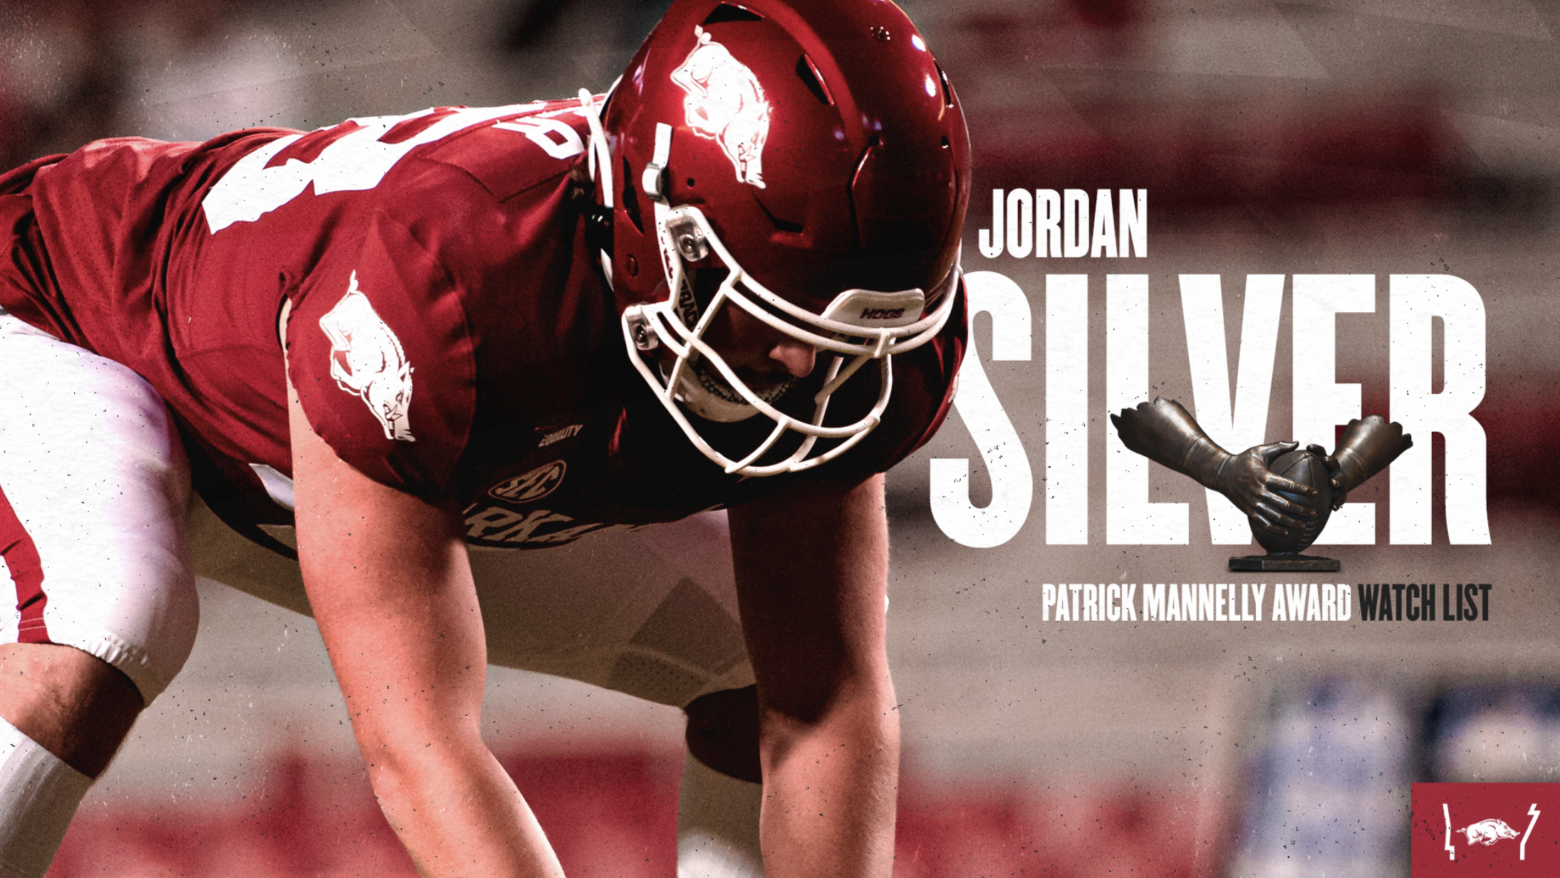 Silver Tabbed To Patrick Mannelly Award Watch List